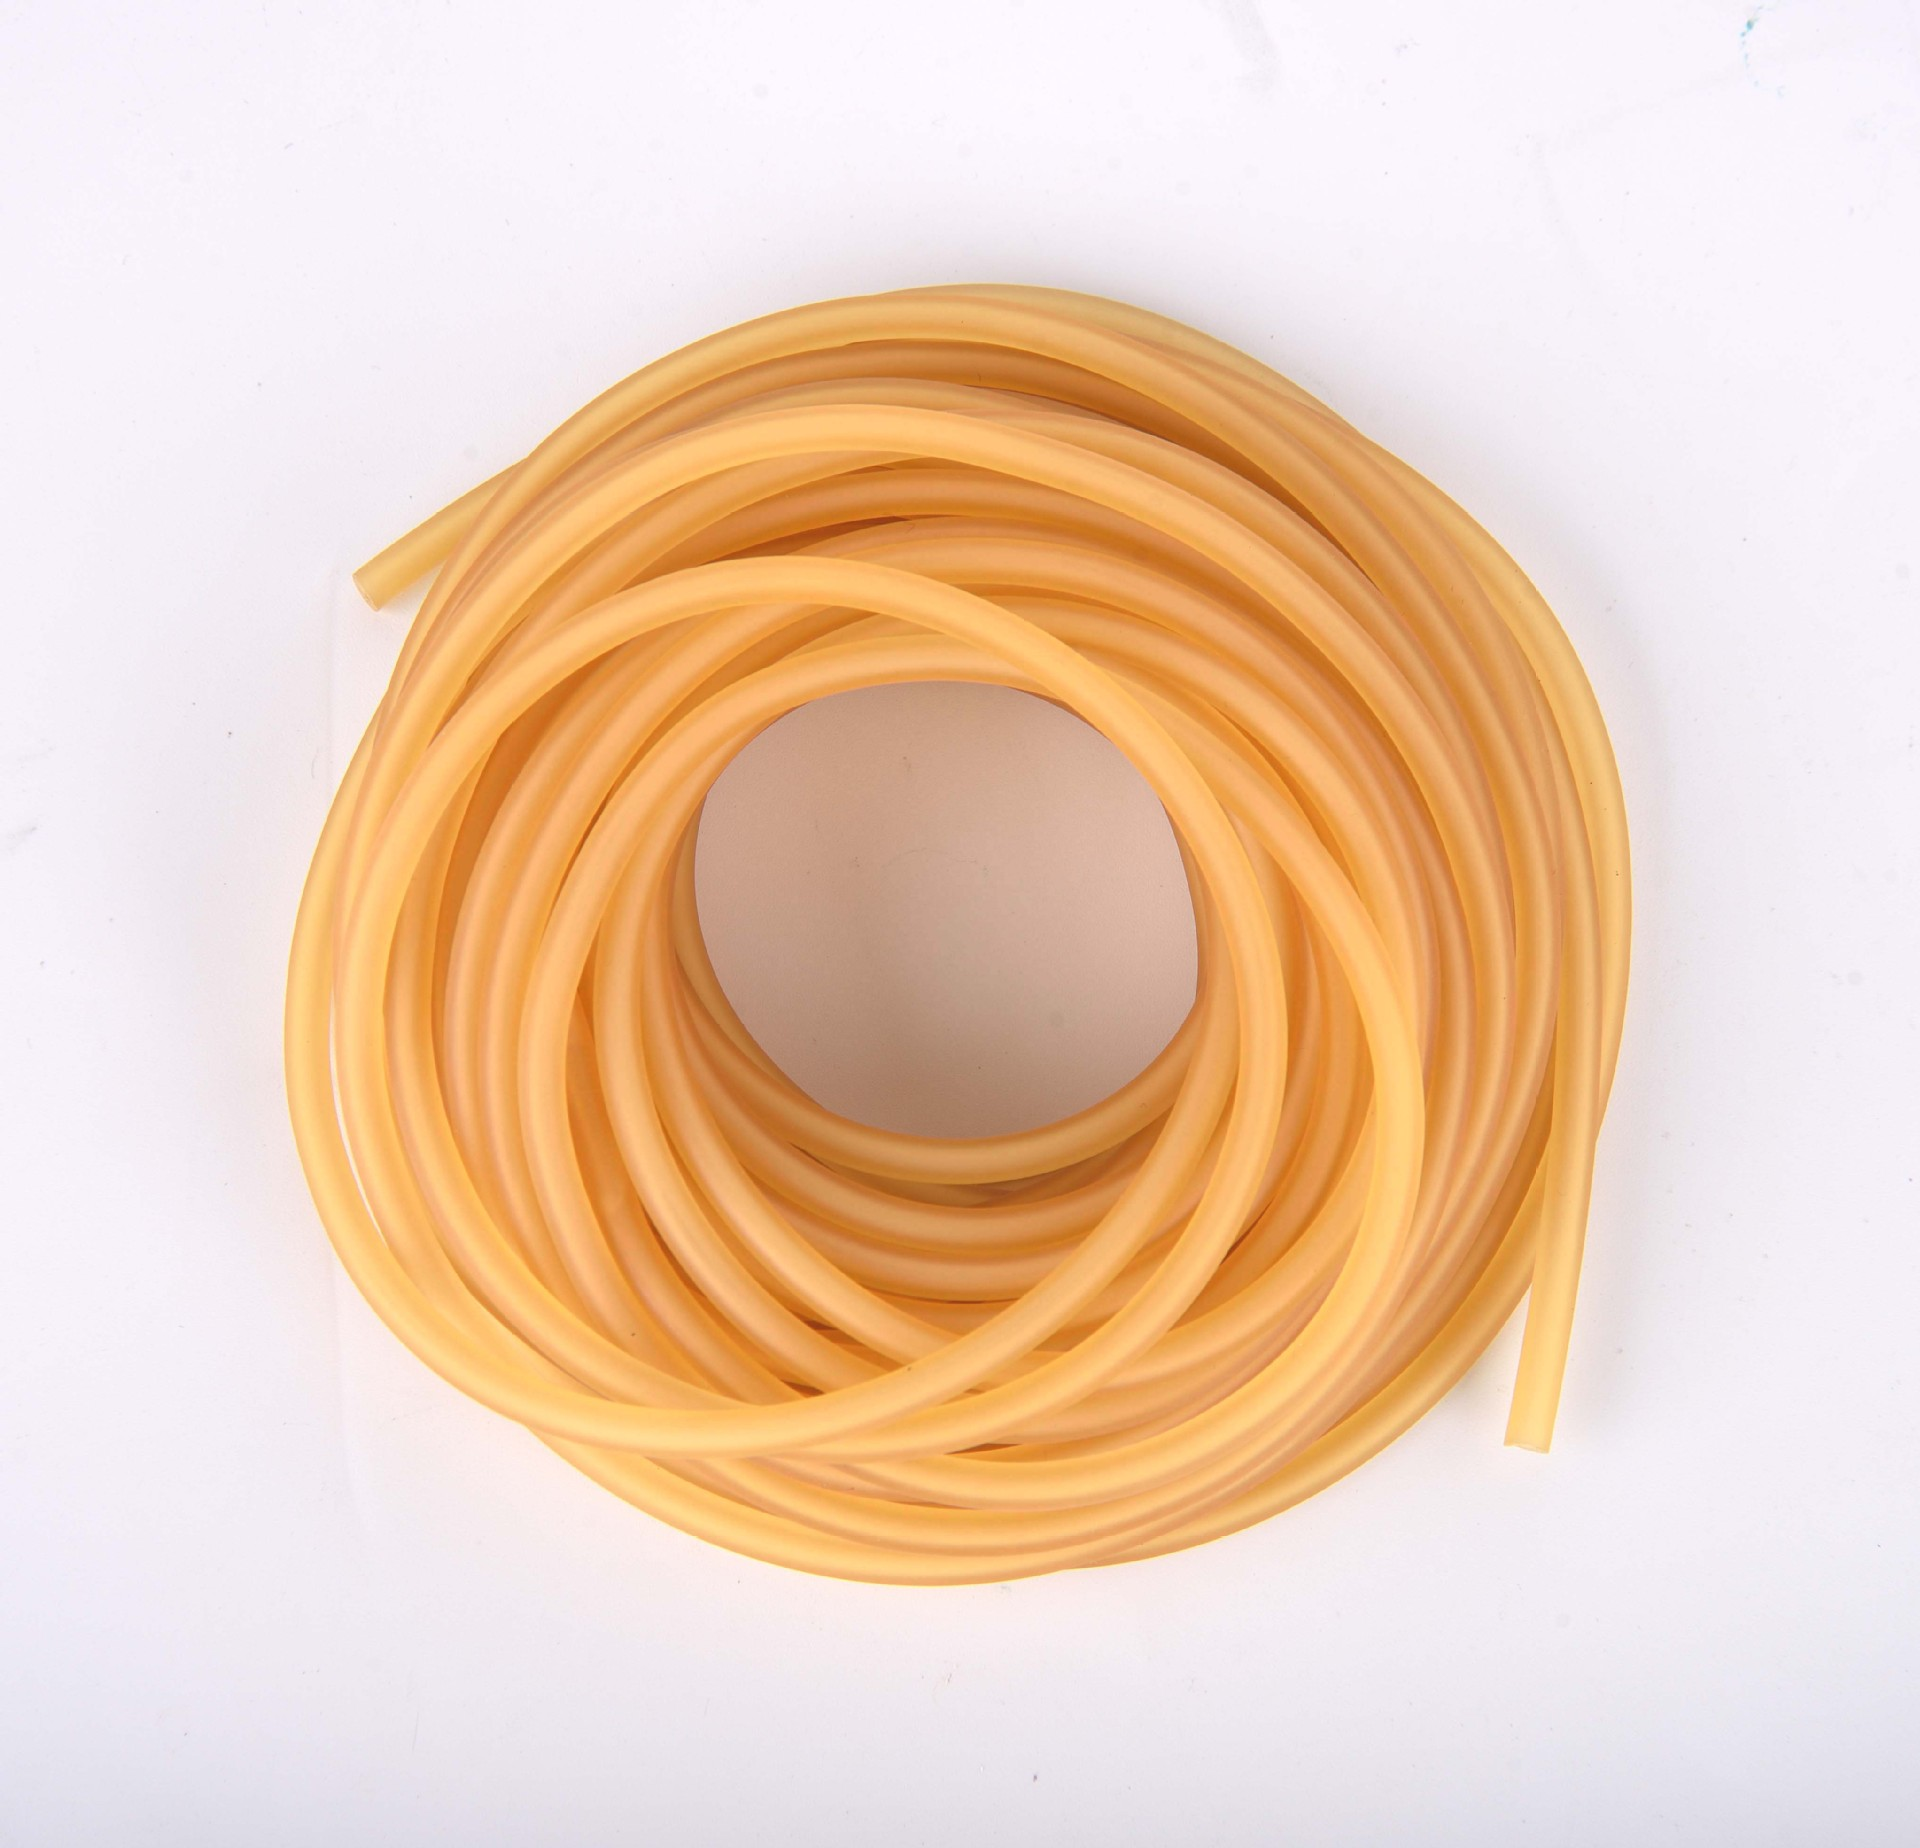 2mm X 4mm 3mm X 5mm Nature Latex Rubber Hoses Flexible Pipe High Resilient Elastic Surgical Medical Tube Soft Slingshot Catapult